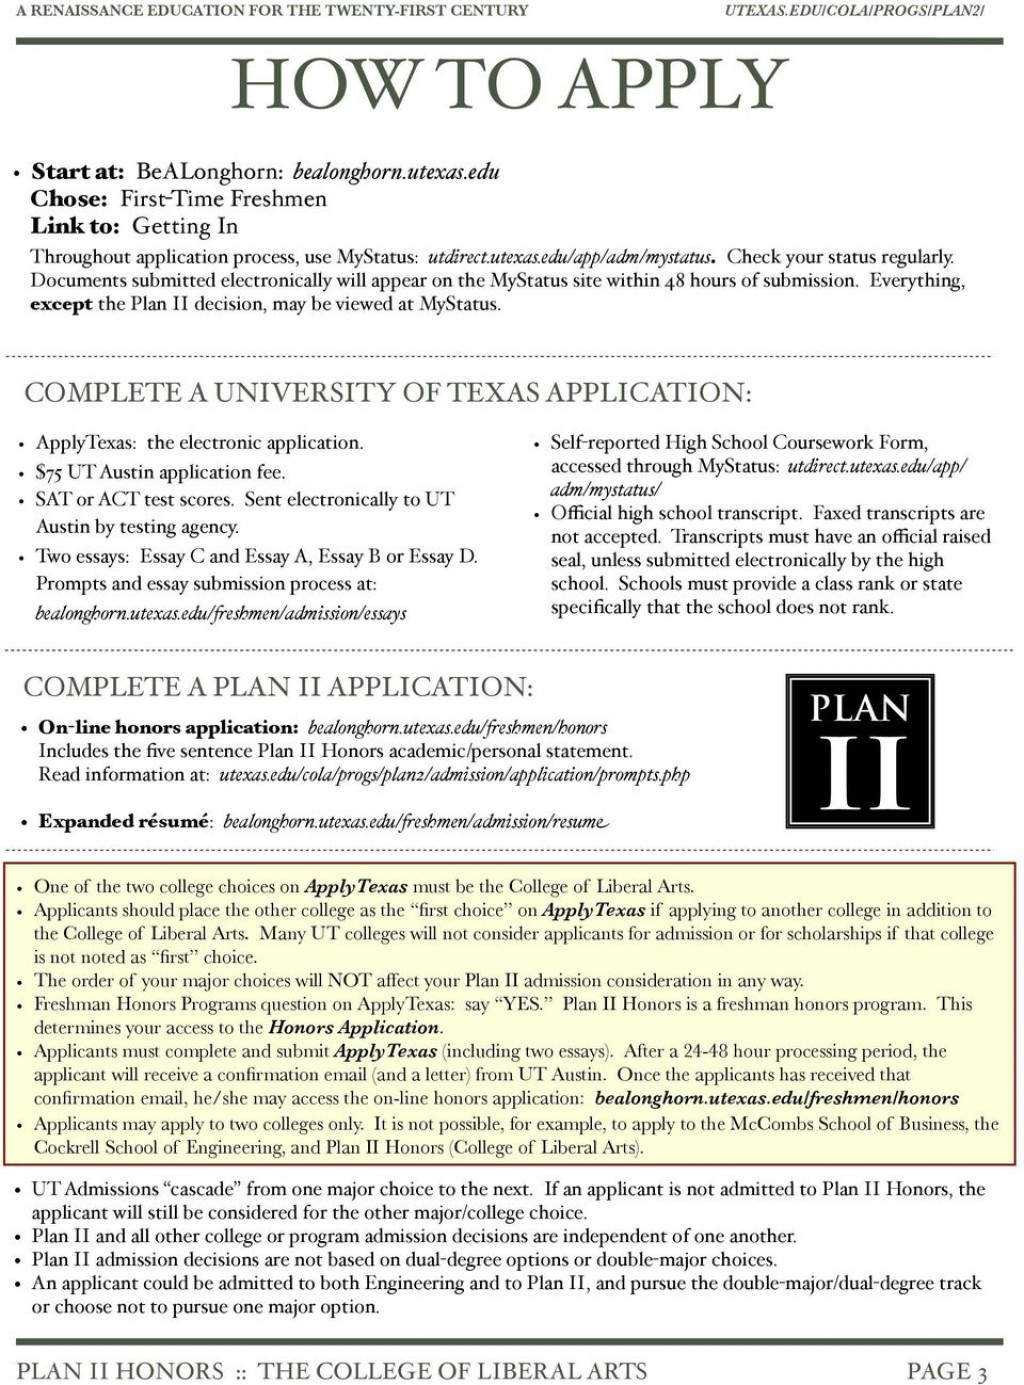 005 Essay Example Fsu Application College Texas Admission P Examples Florida State Remarkable Large